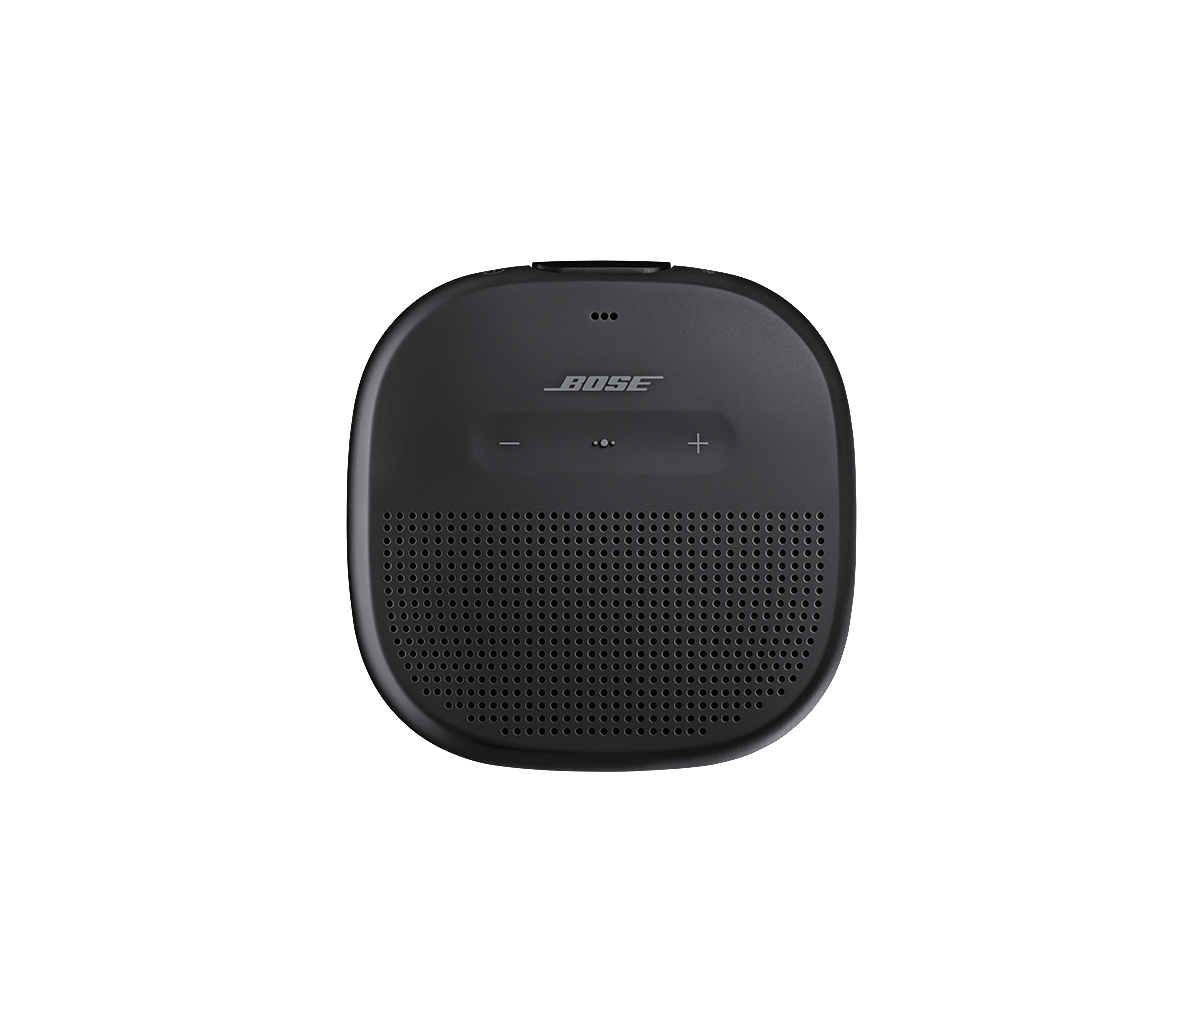 Bose_SoundLink_Micro_Bluetooth®_speaker